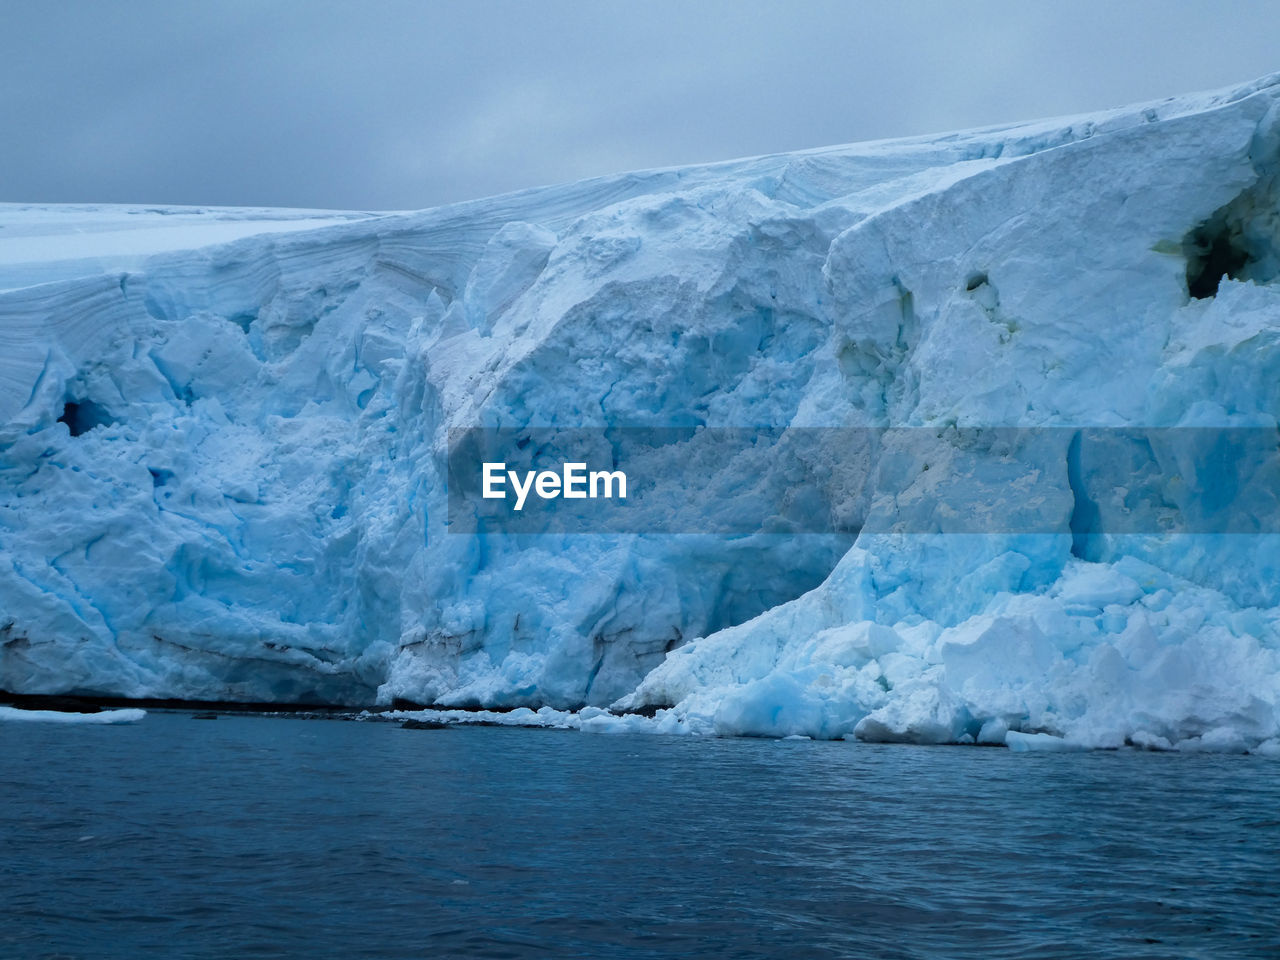 water, ice, glacier, cold temperature, environment, sea, landscape, waterfront, sky, scenics - nature, beauty in nature, frozen, tranquil scene, iceberg, winter, nature, tranquility, no people, day, melting, floating on water